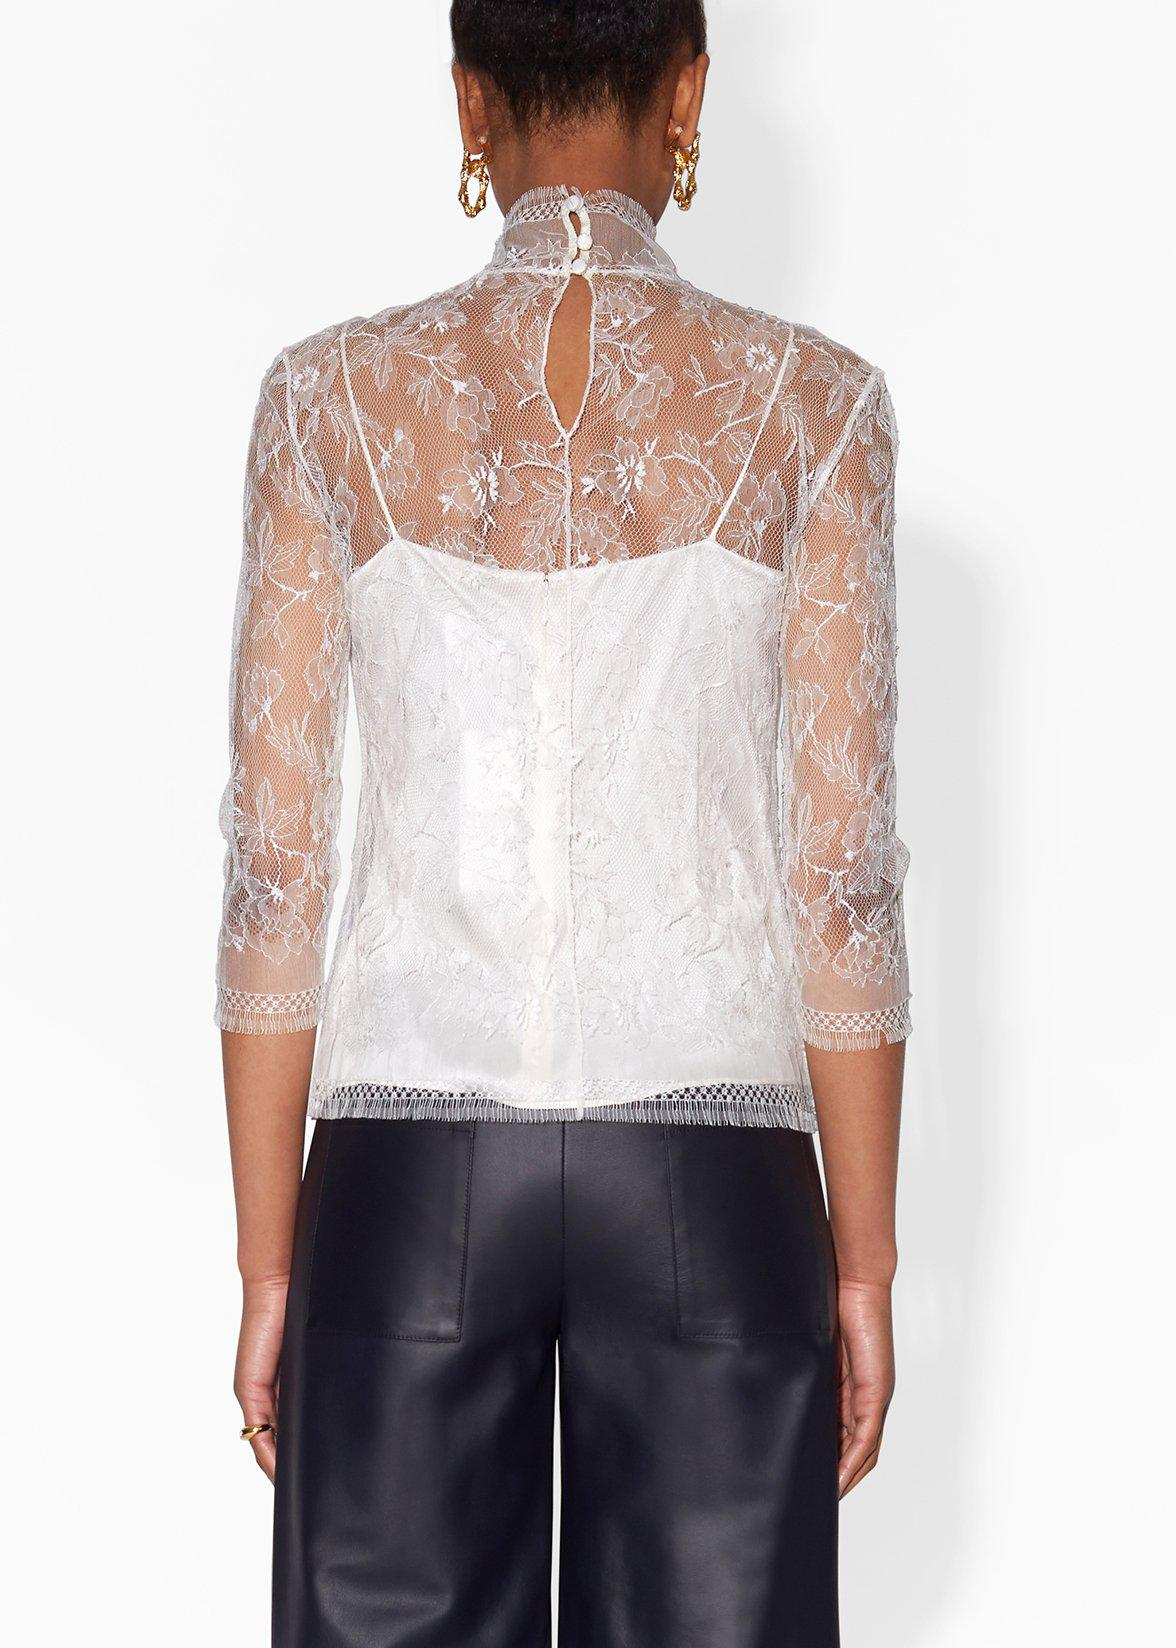 TURTLENECK IN CHANTILLY LACE 3